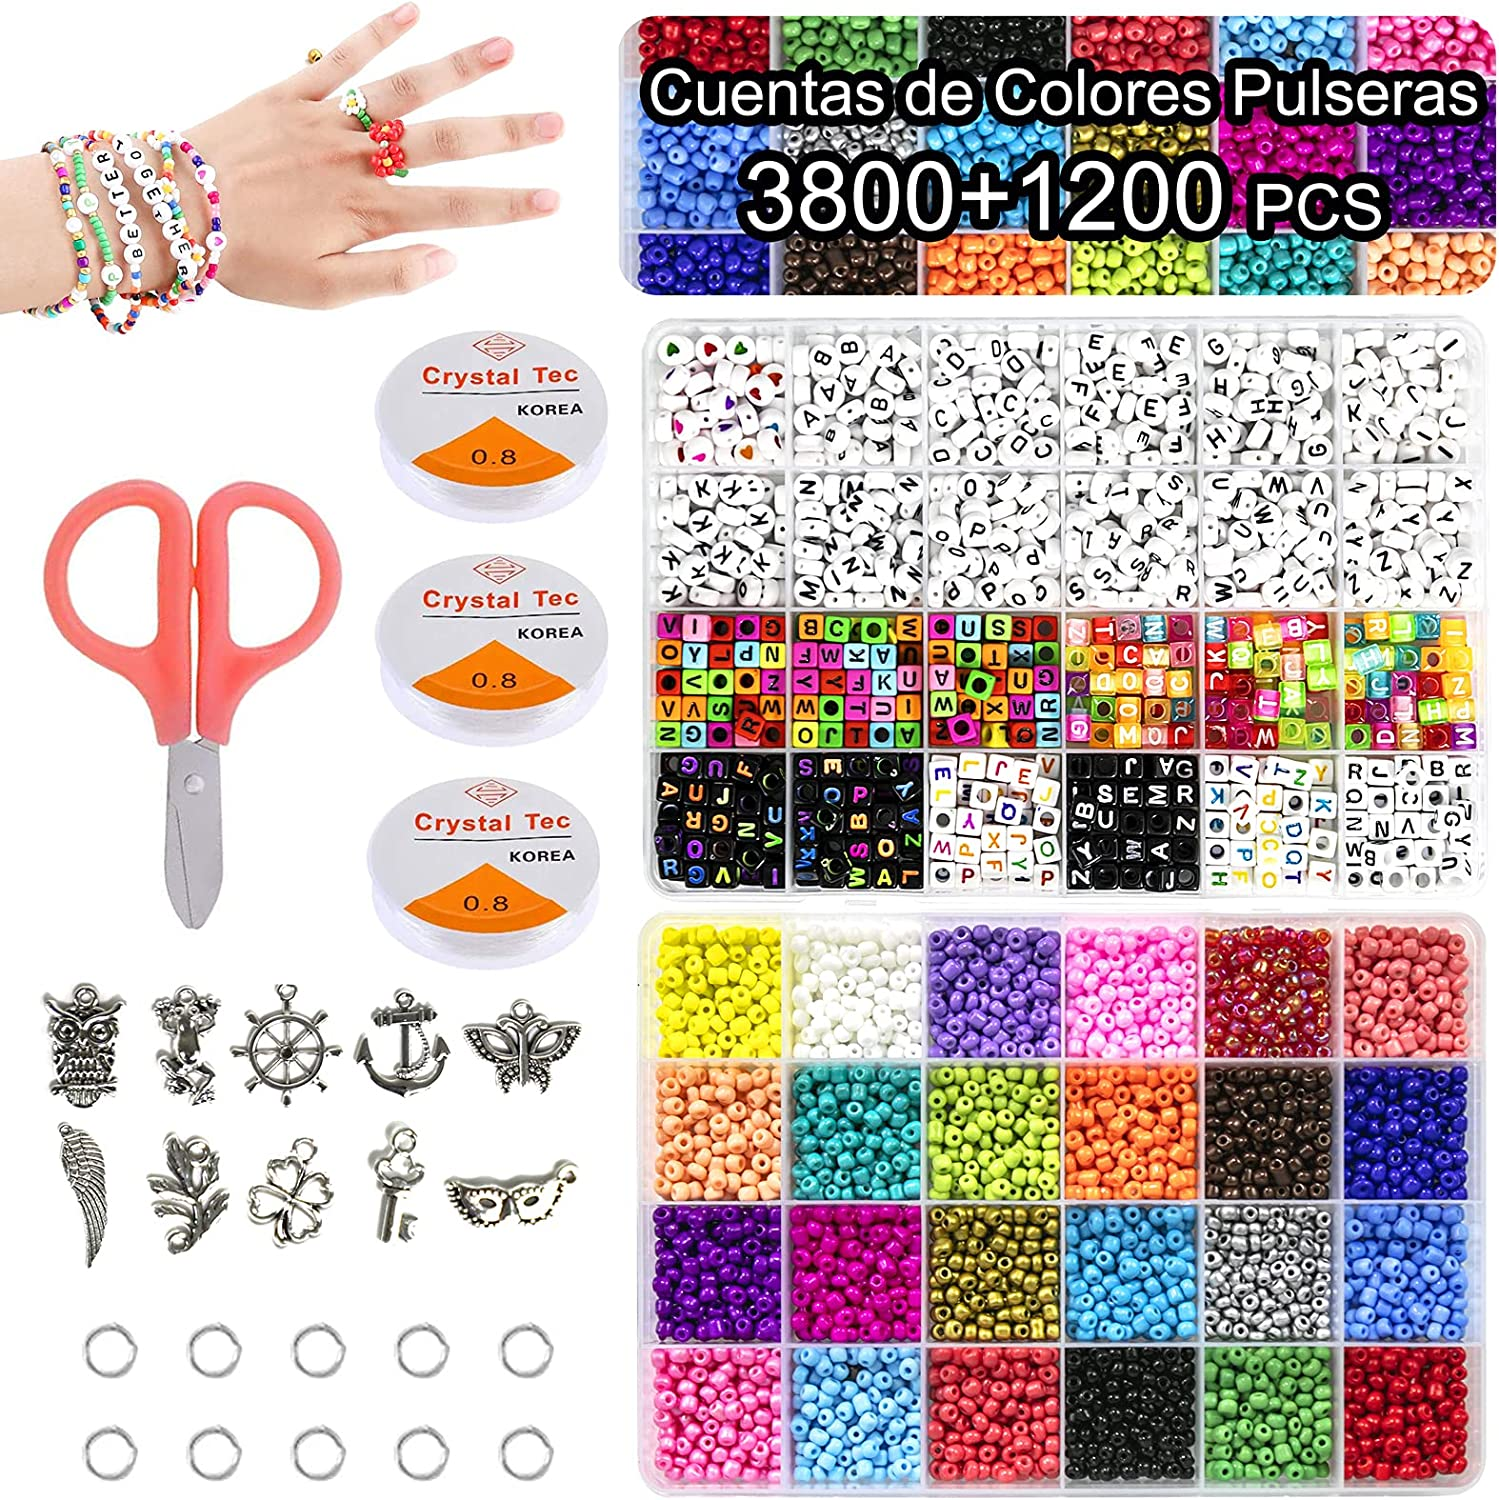 Bead Bracelet Making Kit 3800pcs 4mm Denver Mall Seed and Industry No. 1 p 1200 Glass Beads